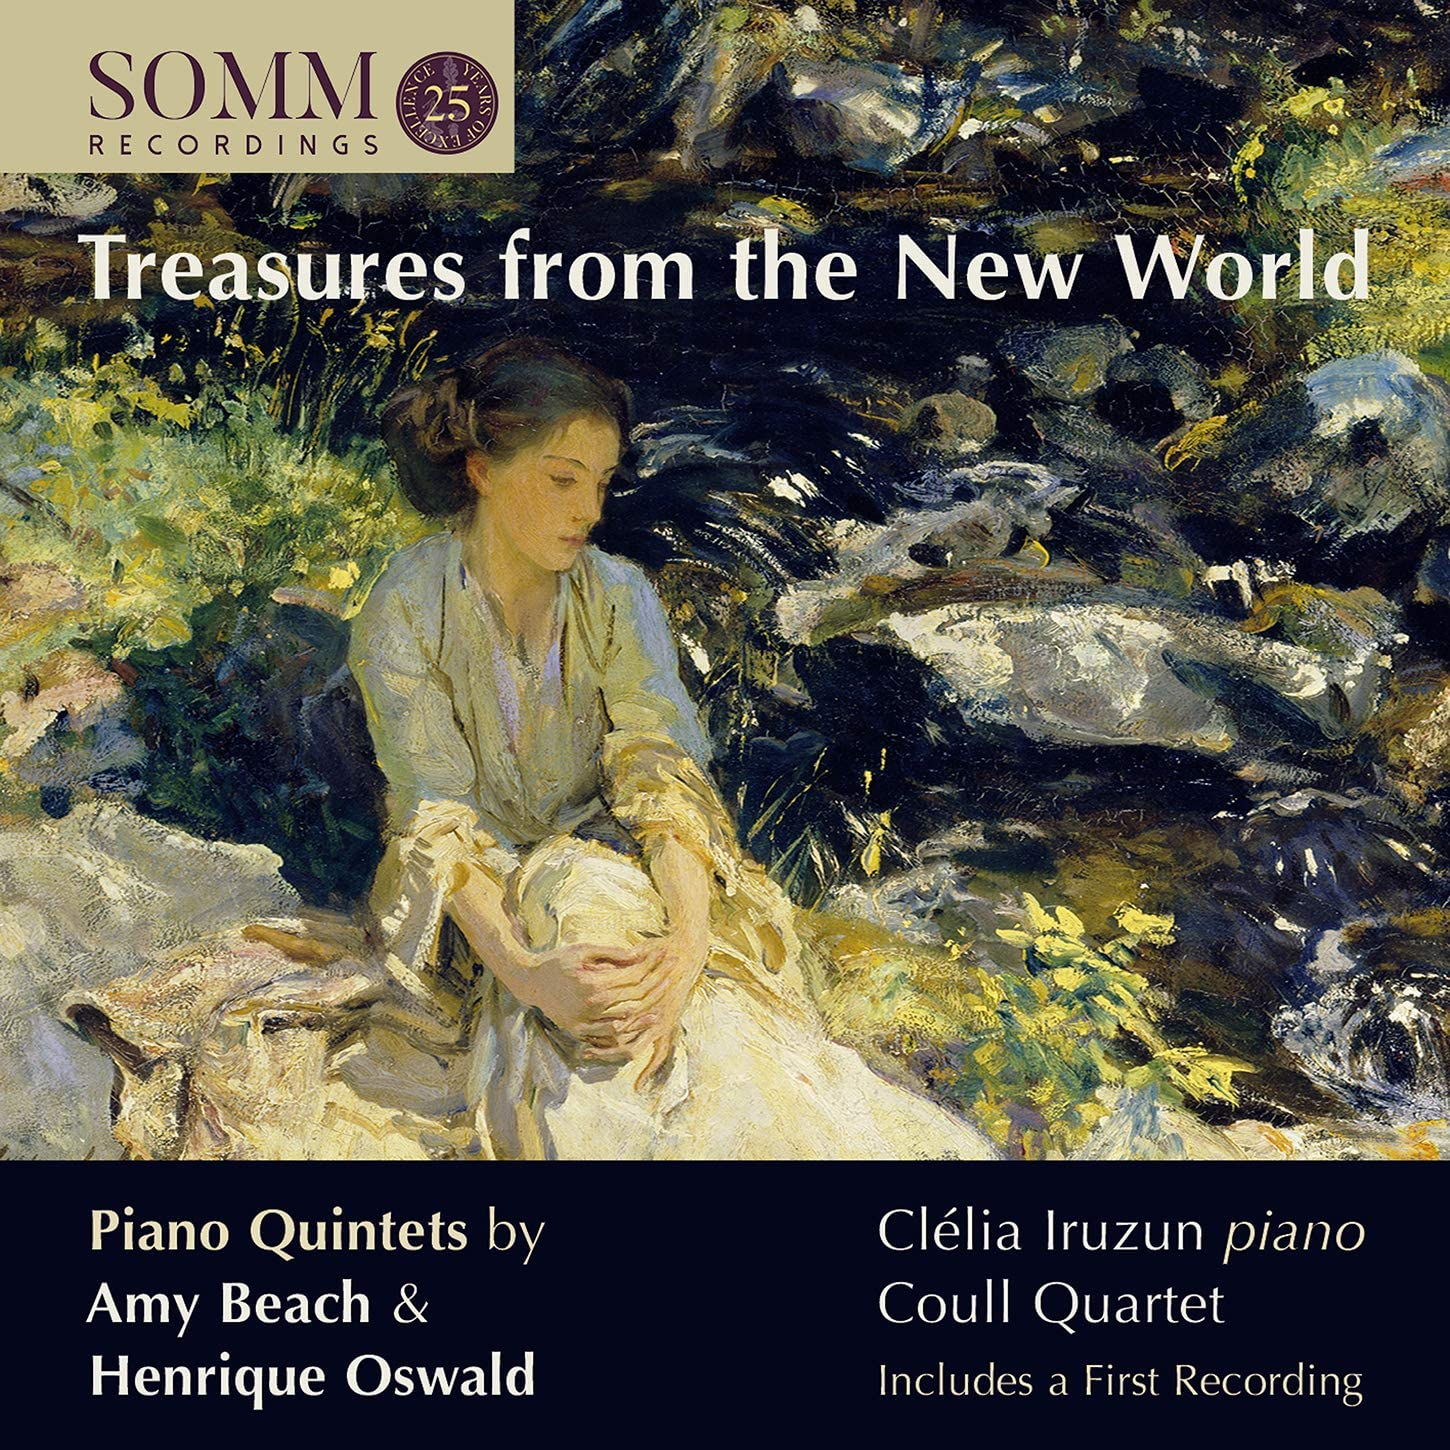 Review of Treasures from the New World